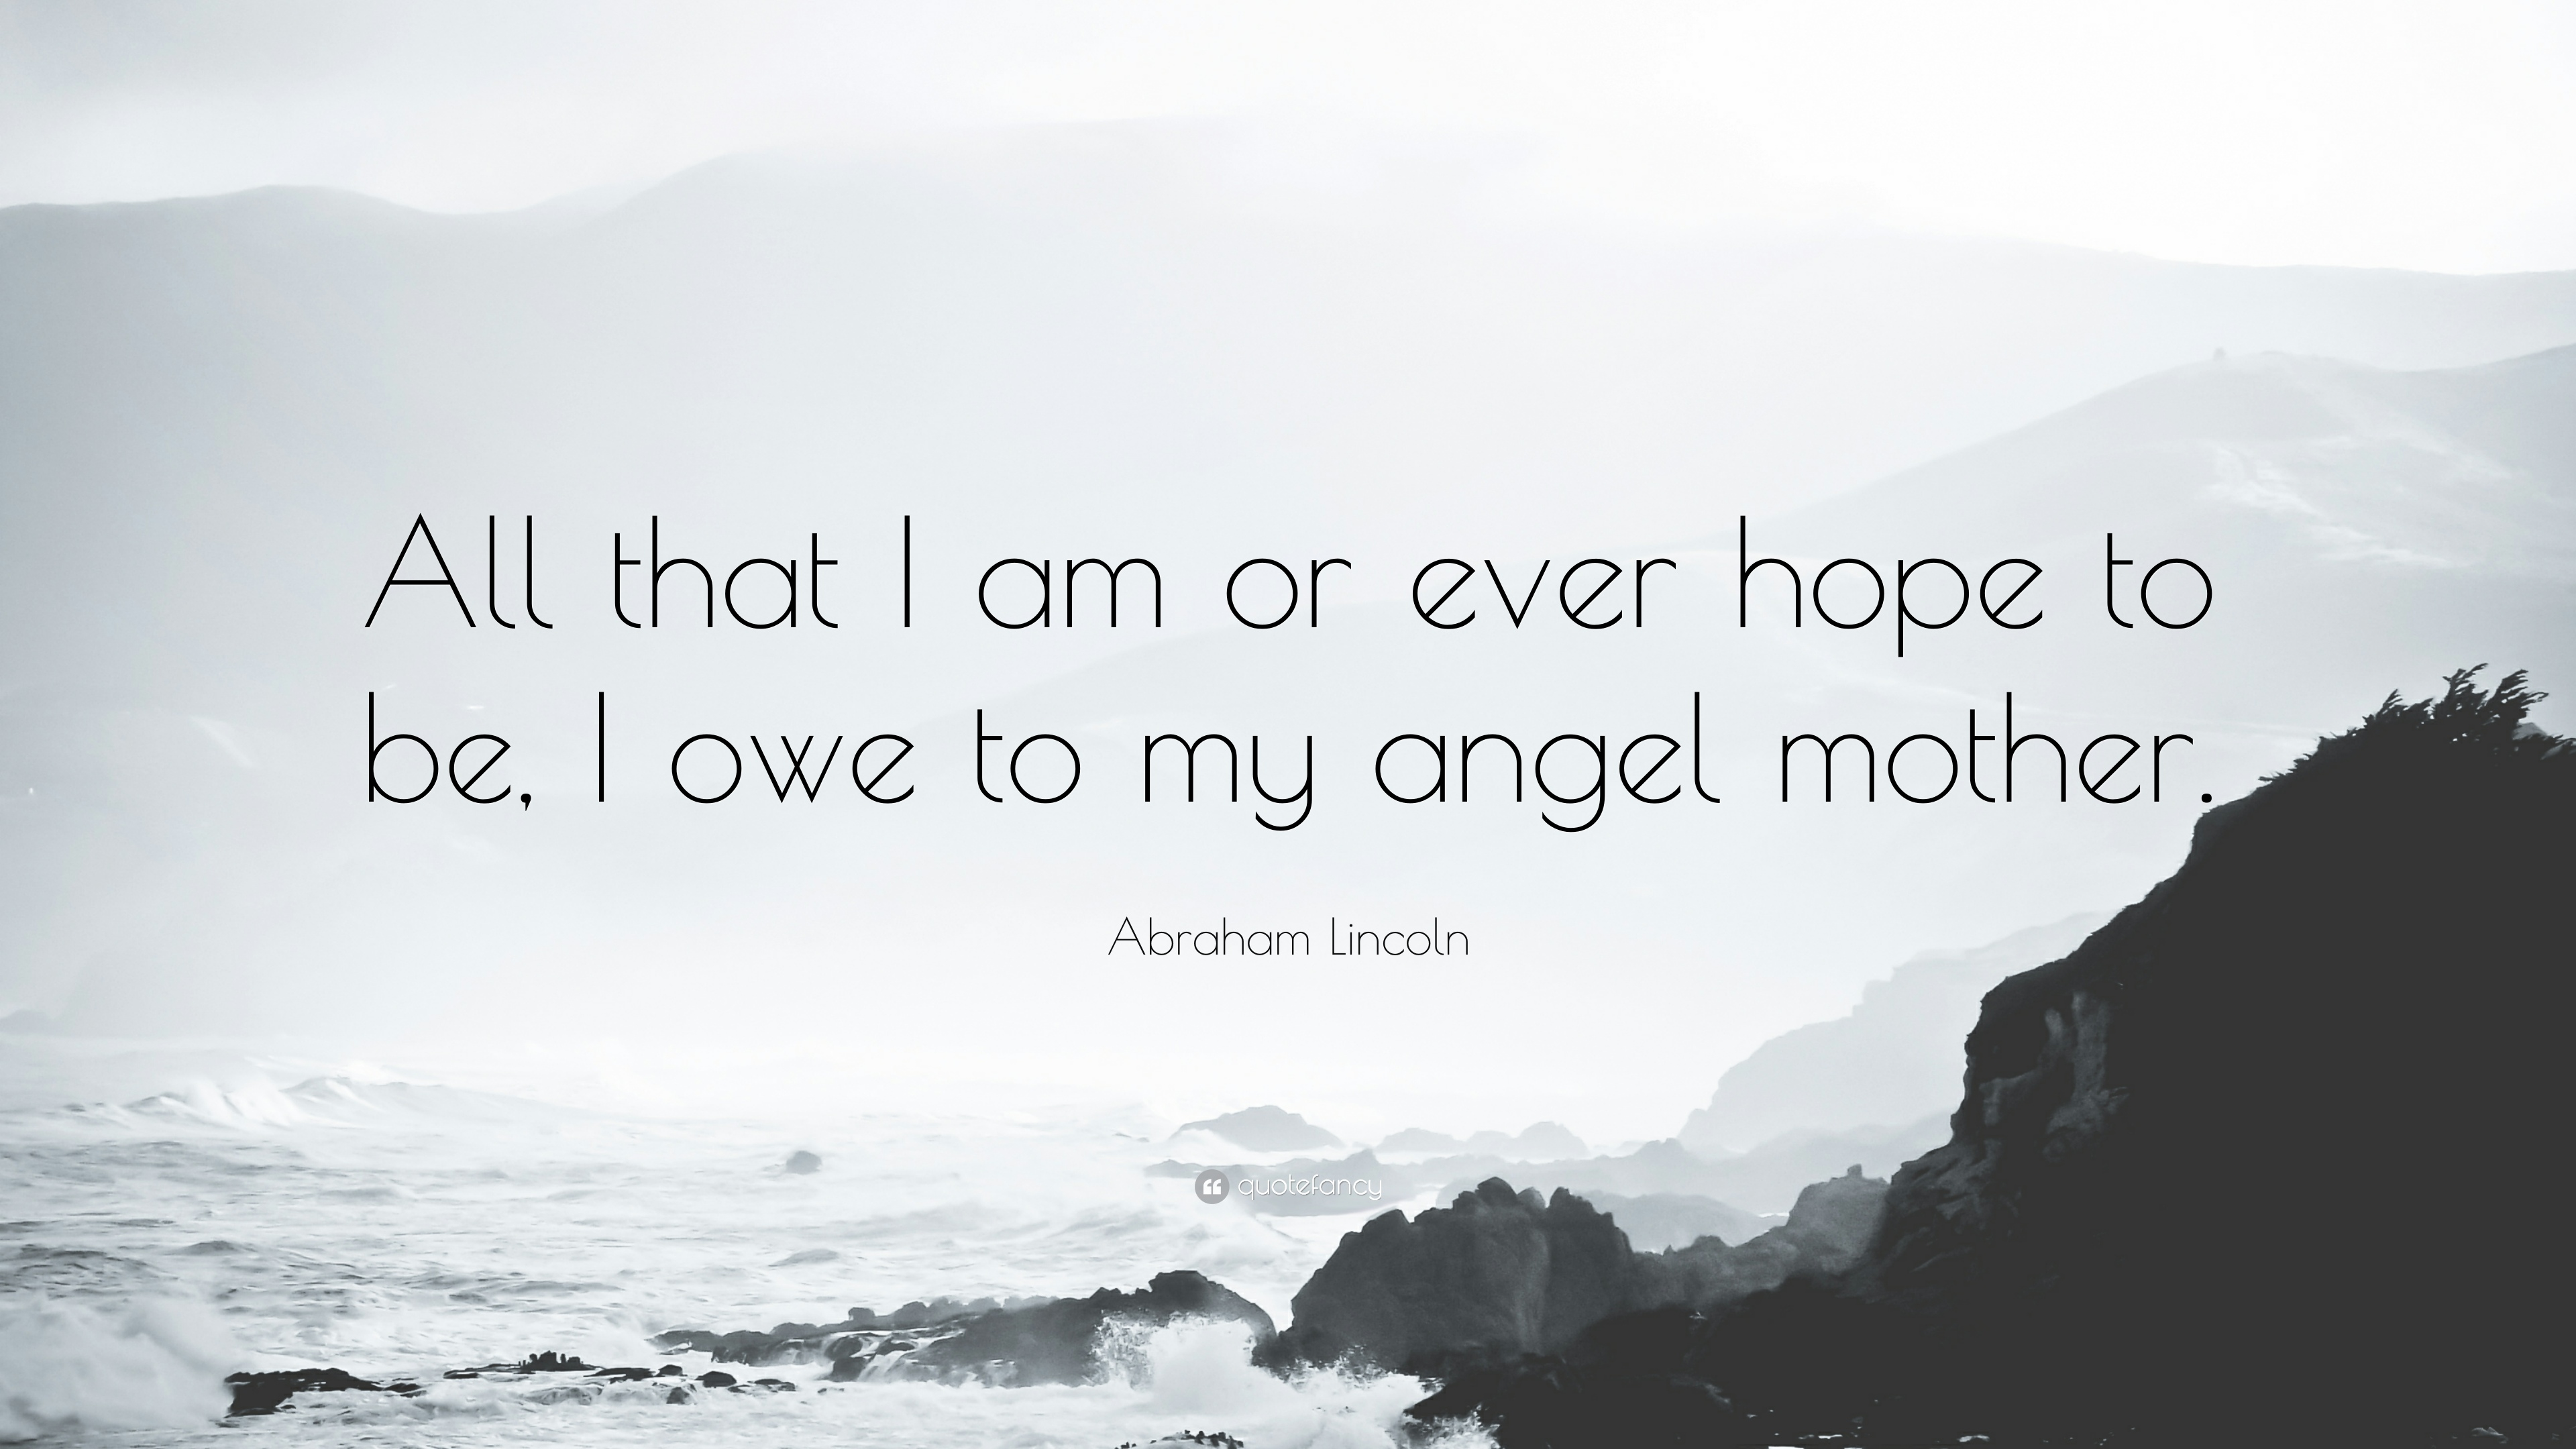 Abraham Lincoln Quote All That I Am Or Ever Hope To Be I Owe To